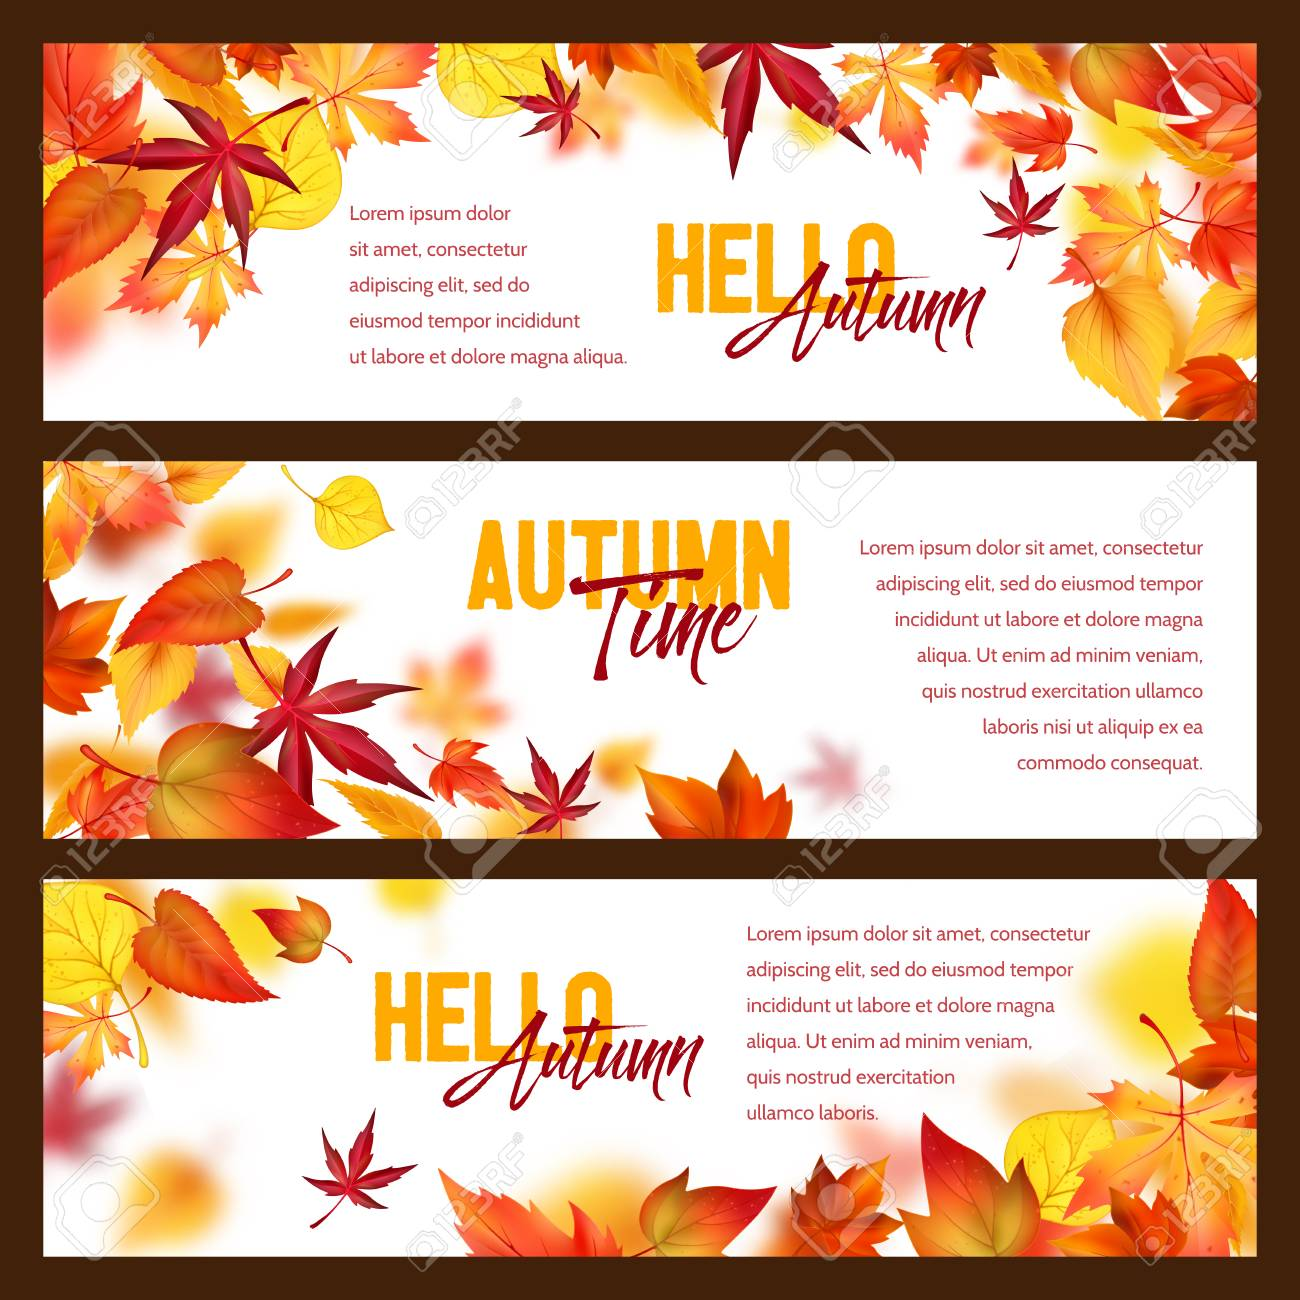 Autumn foliage fall falling leaves vector banners - 101254665